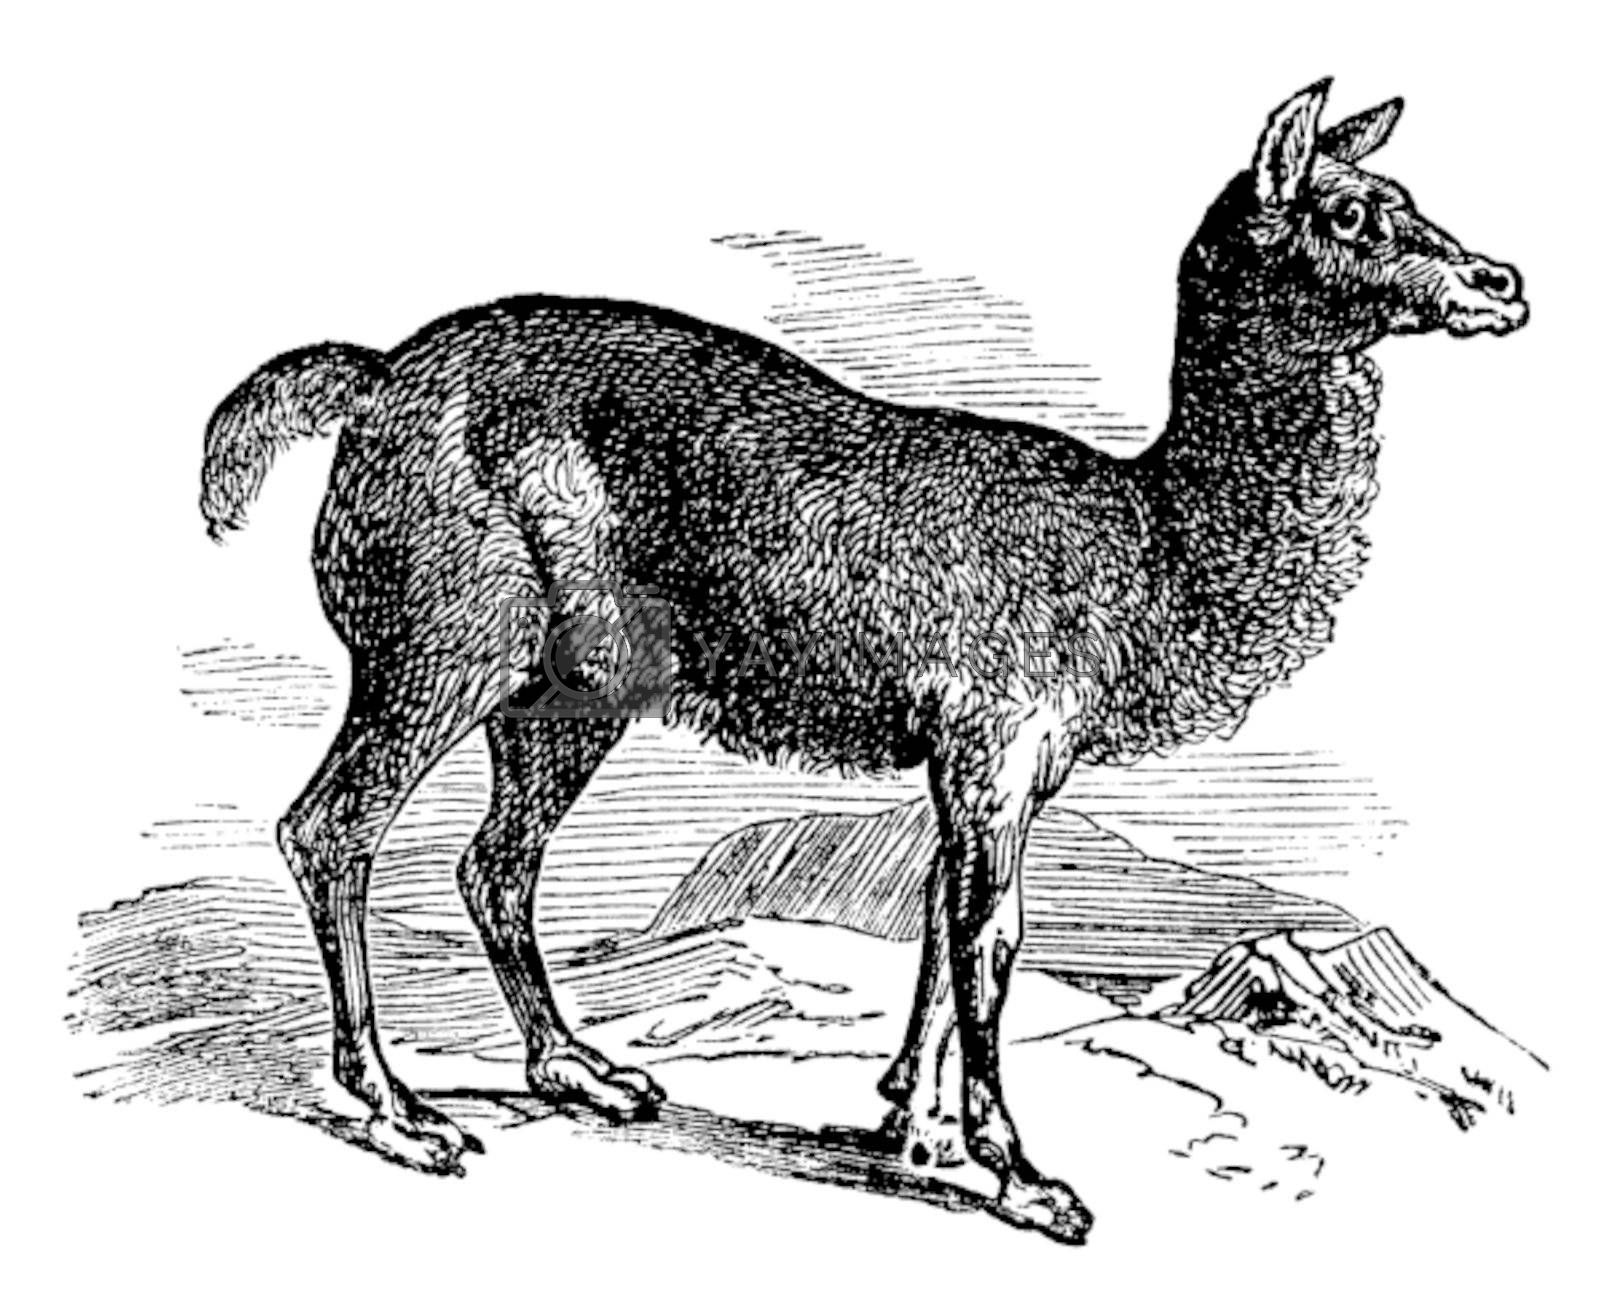 Alpaca or Vicugna pacos vintage engraving. Old engraved illustration of a horned lark bird in his environment.